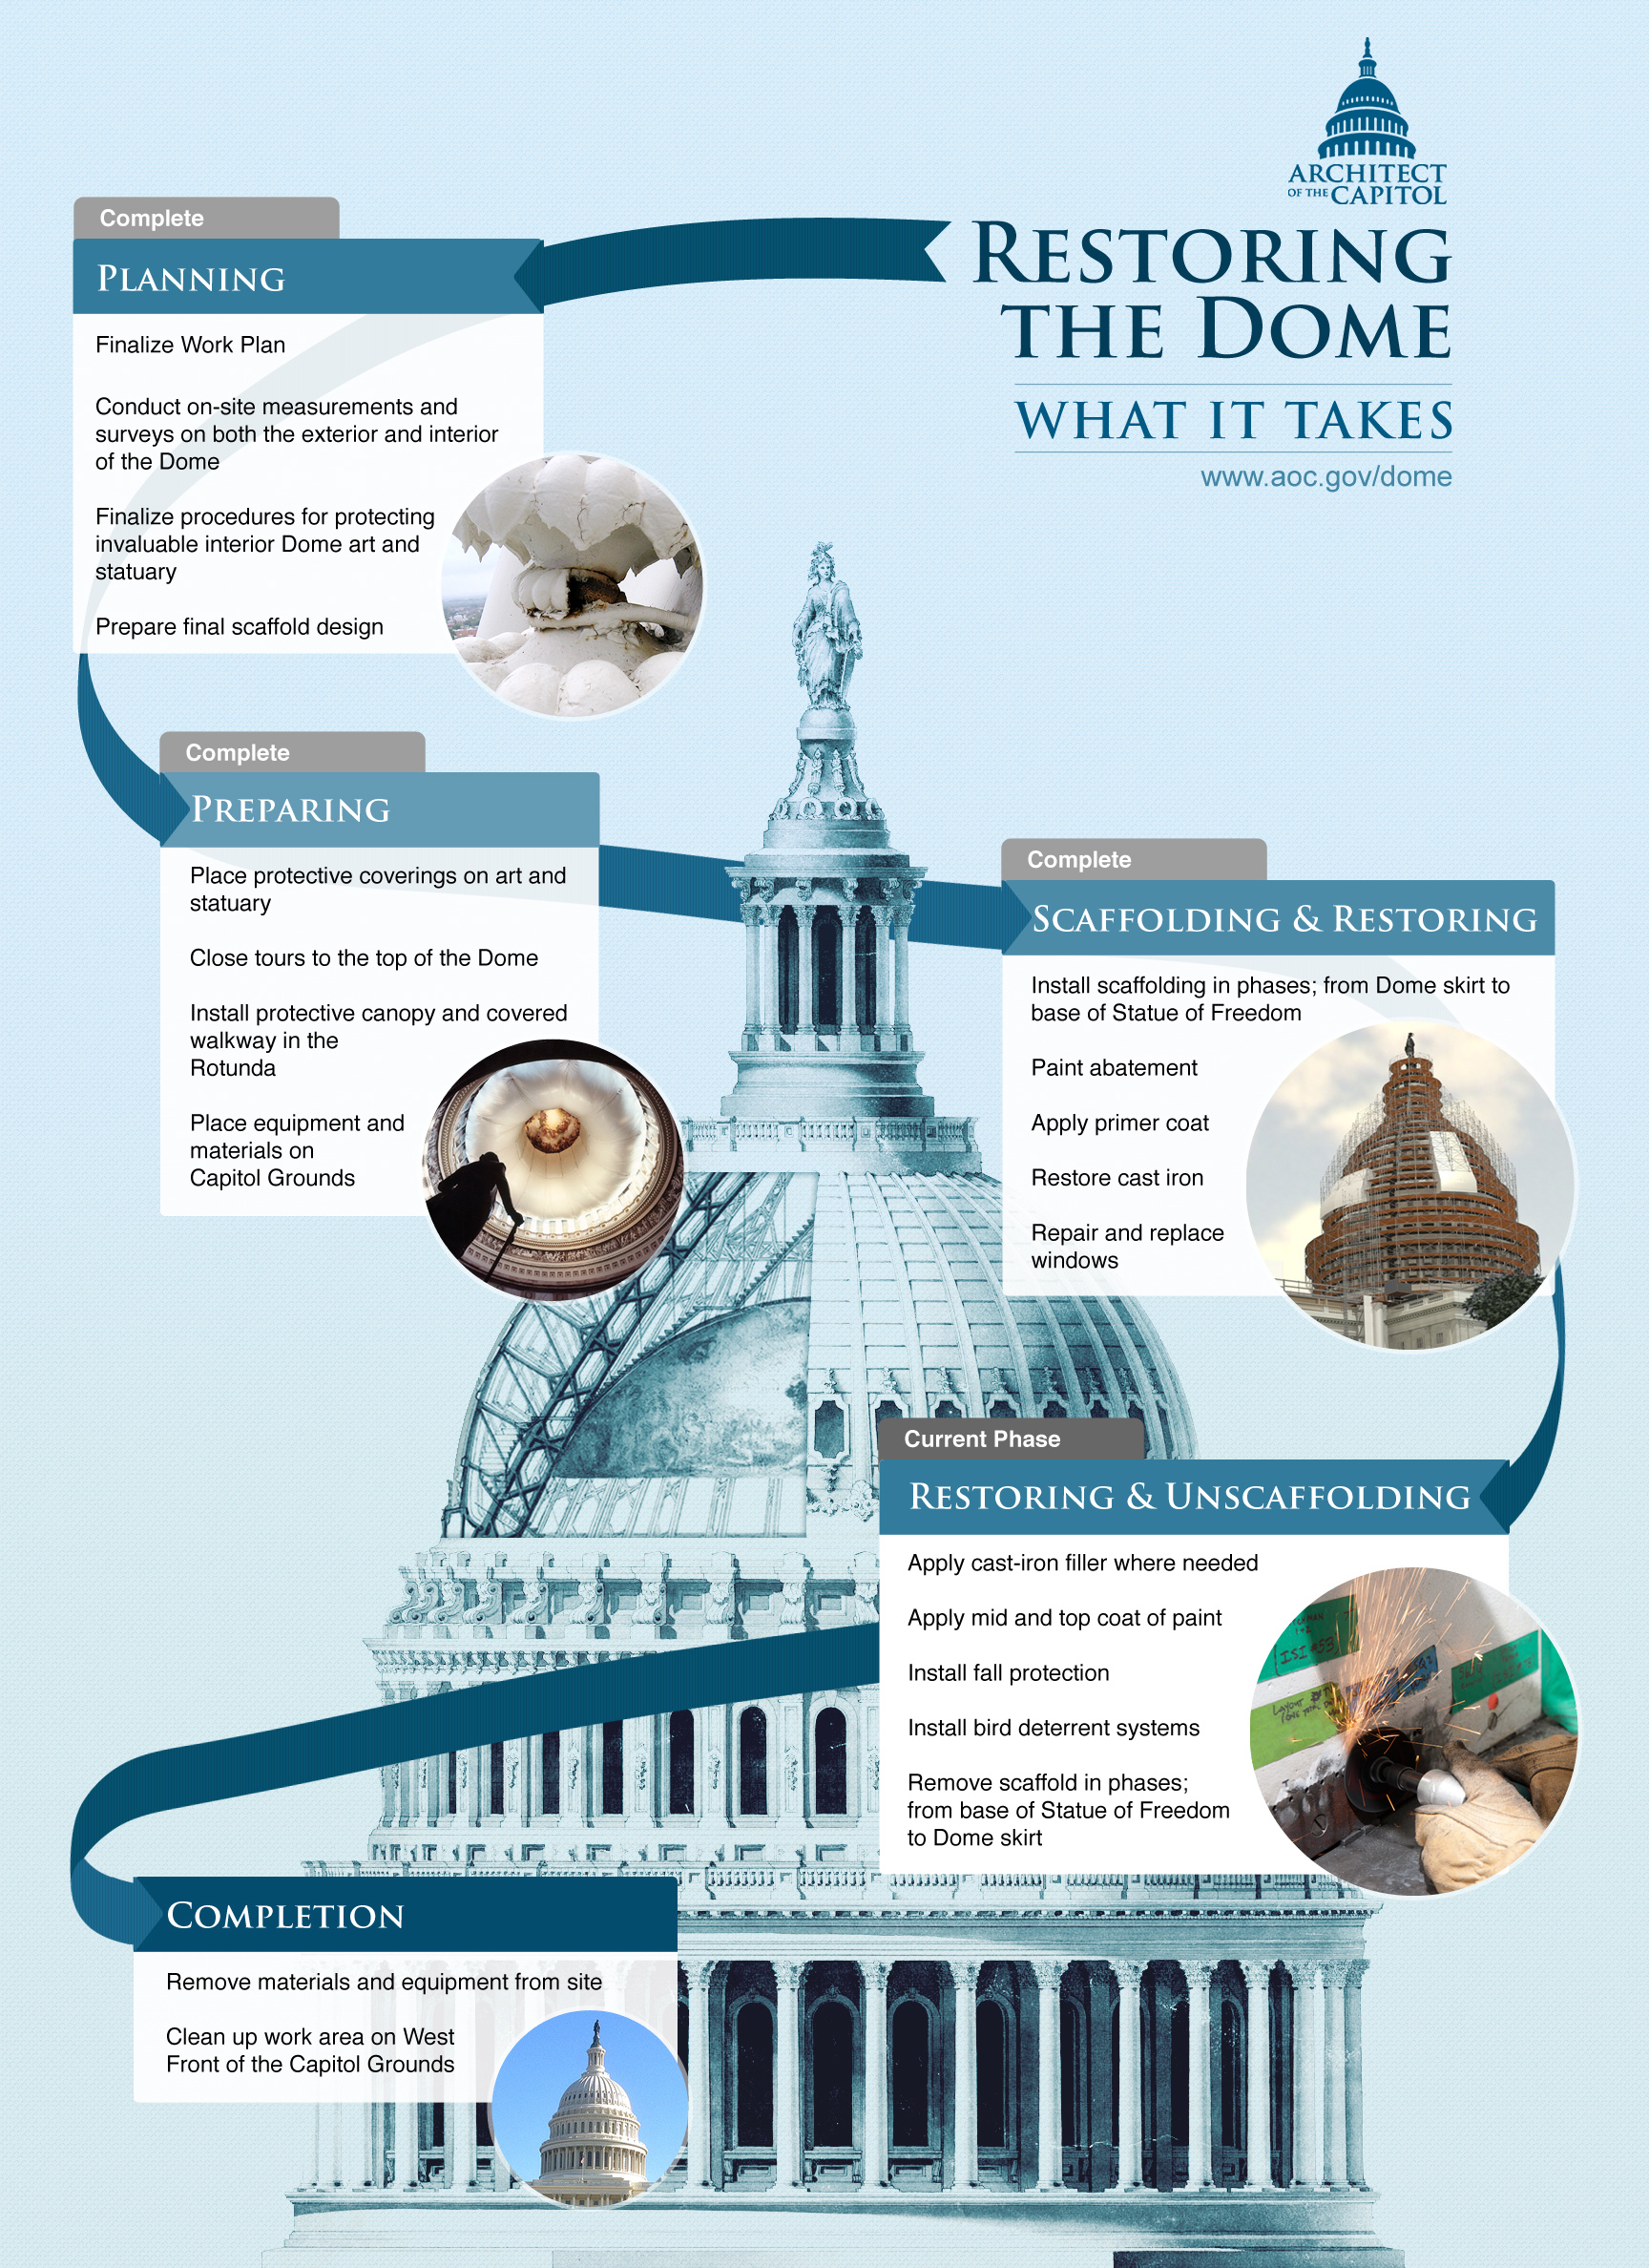 What it takes to restore the Dome